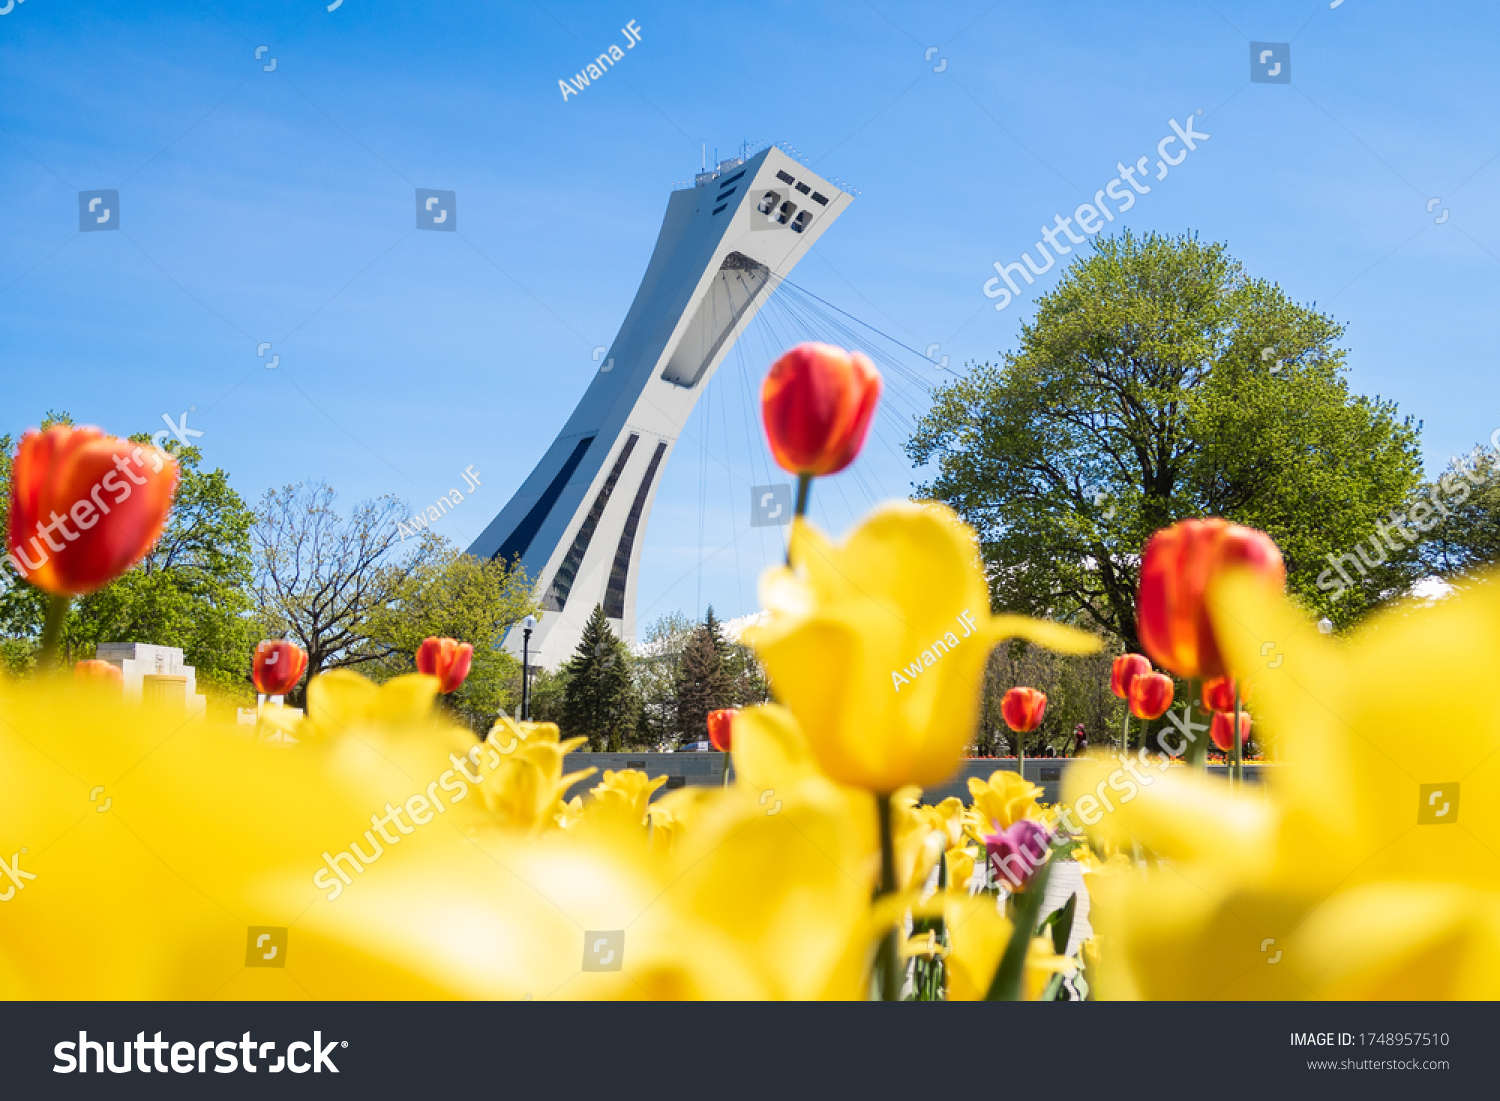 stock-photo-montreal-canada-may-view-of-